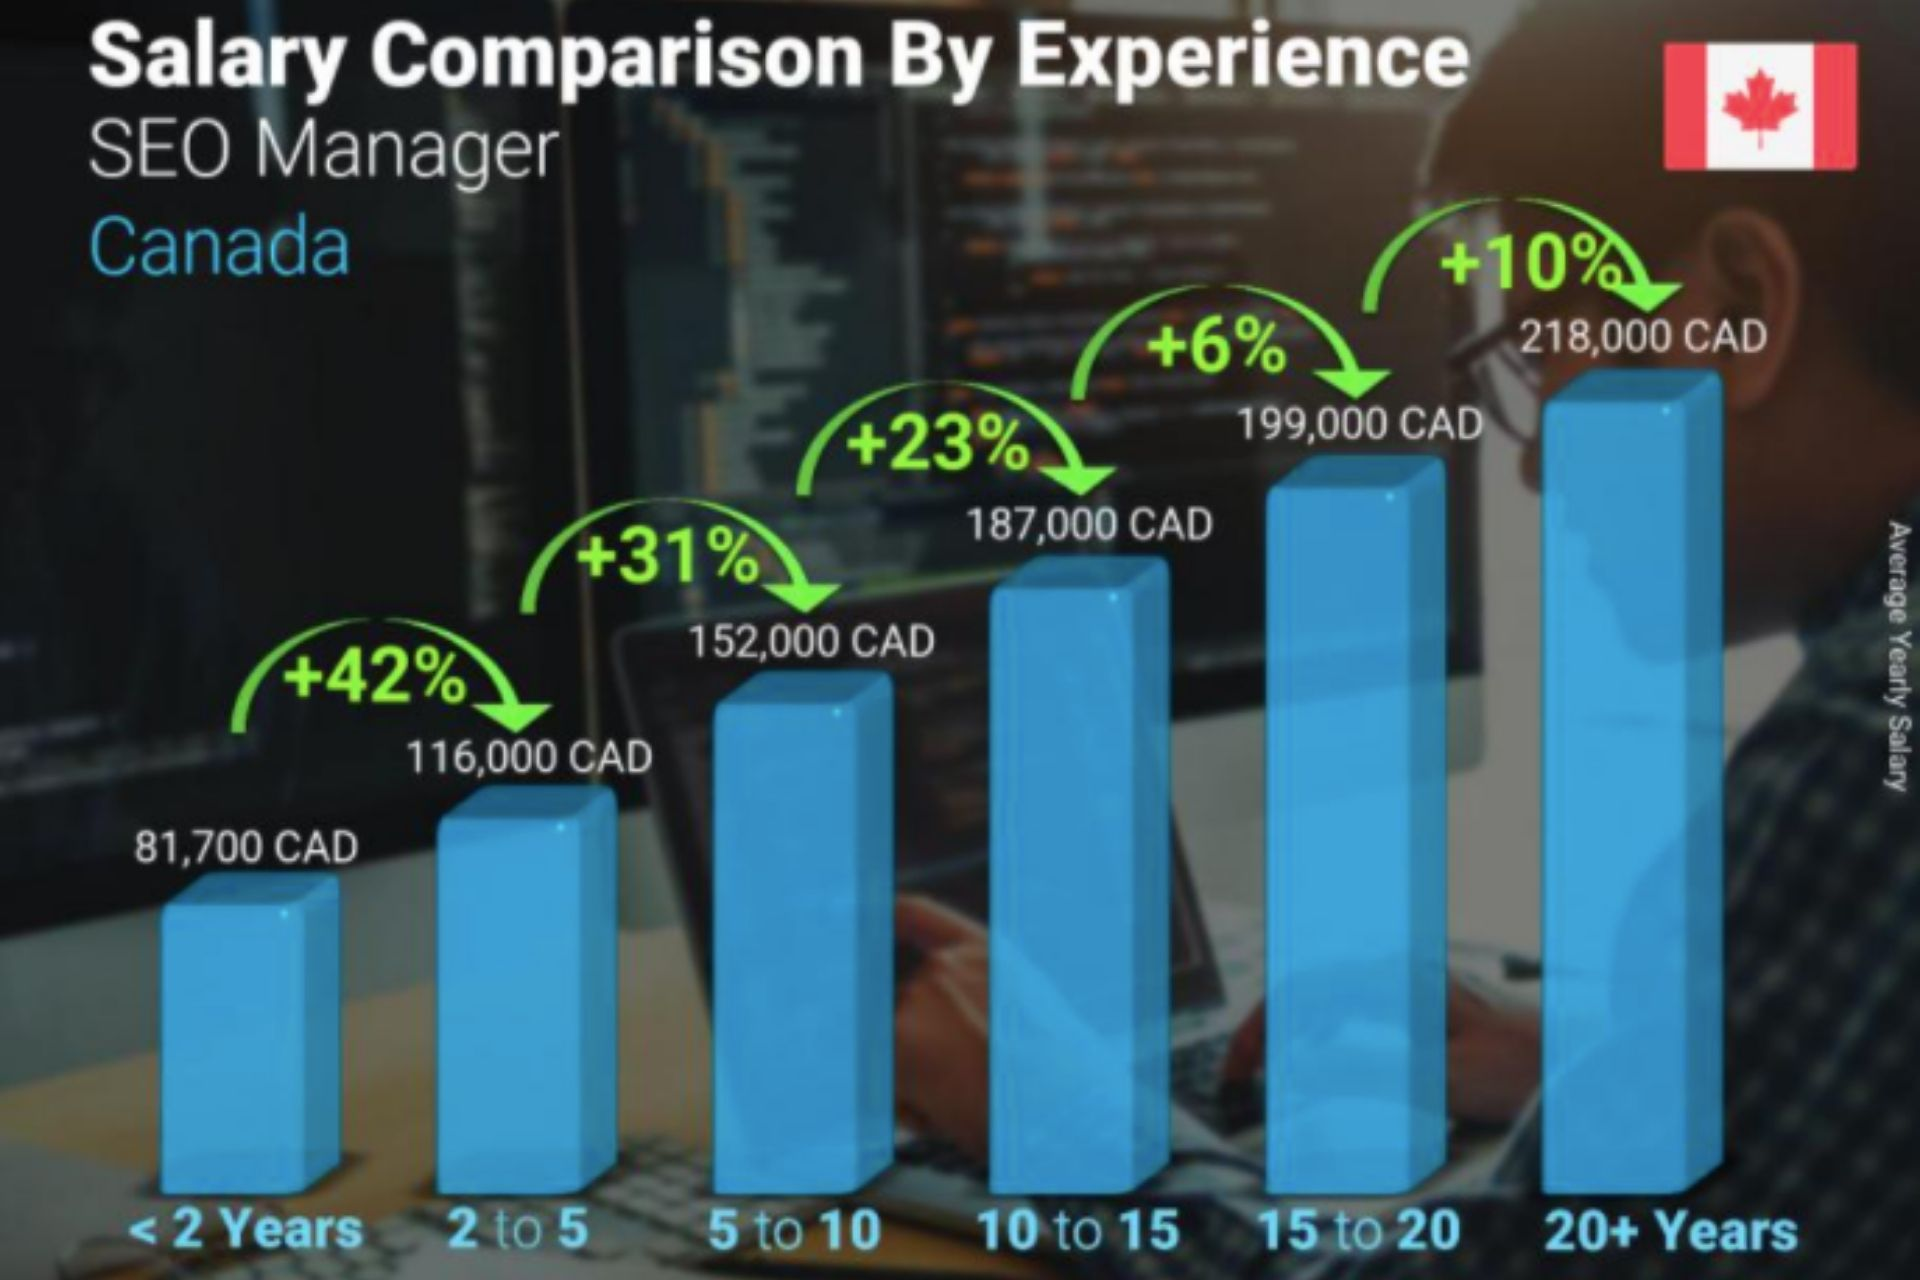 A graph showing annual SEO Manager salary comparison by years of experience